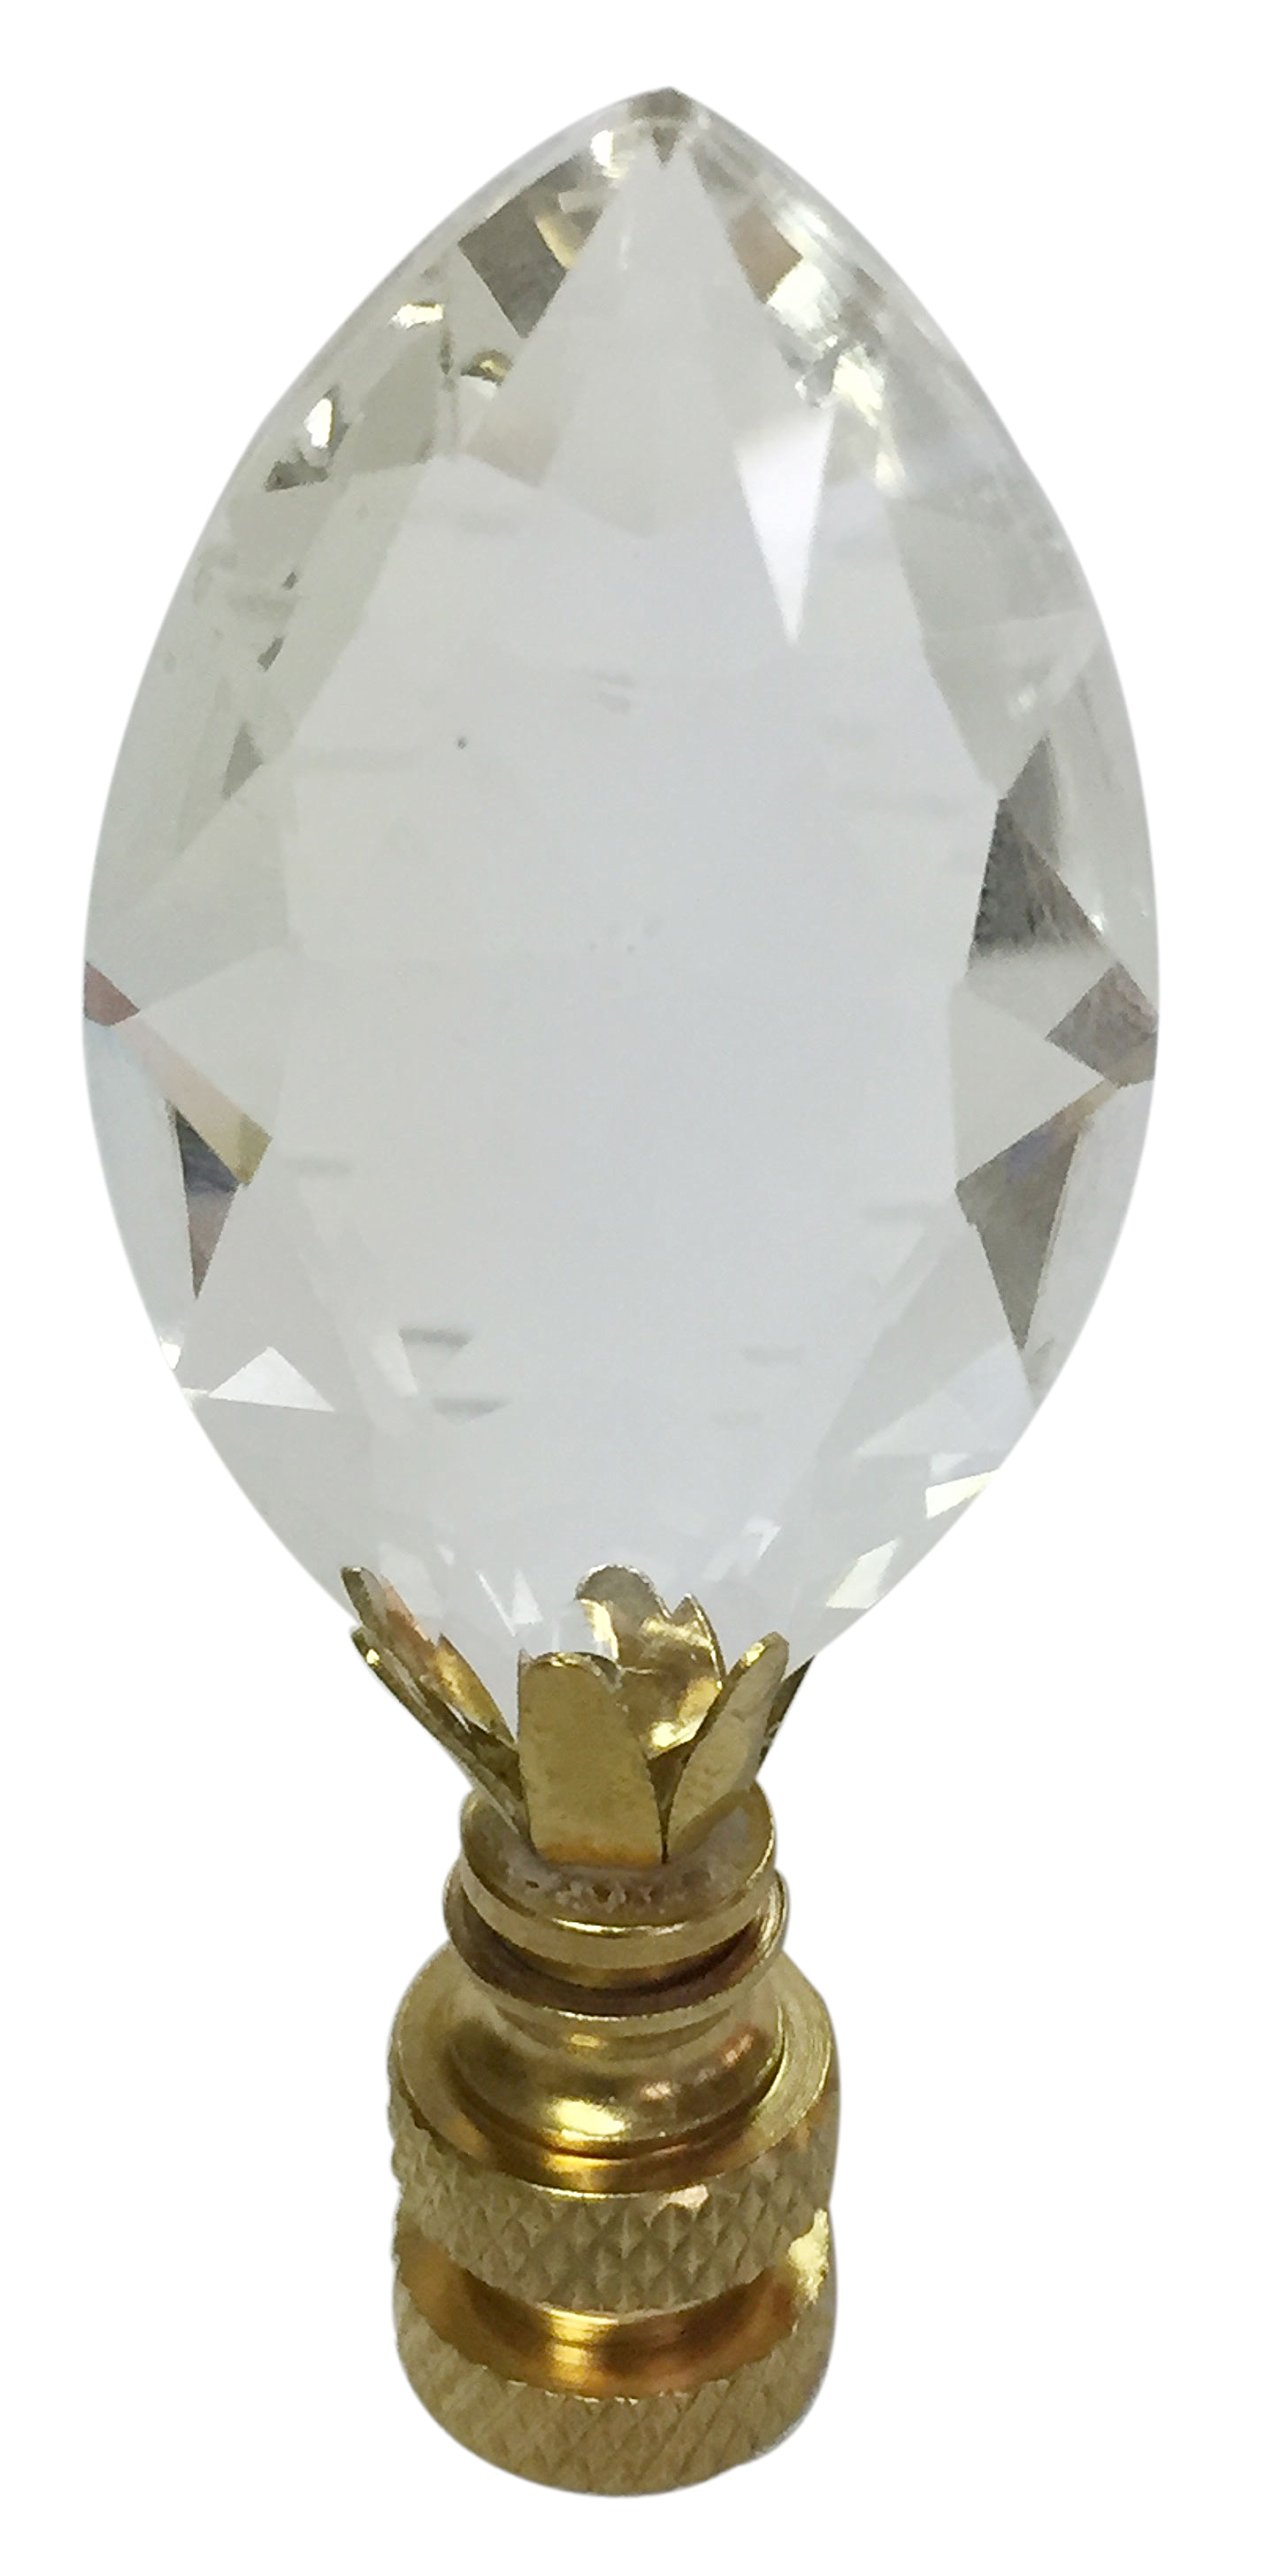 Royal Designs CCF2010-PB-1 Pear Shaped Clear K9 Crystal Finial for Single Lamp Shade with Polished Brass Base